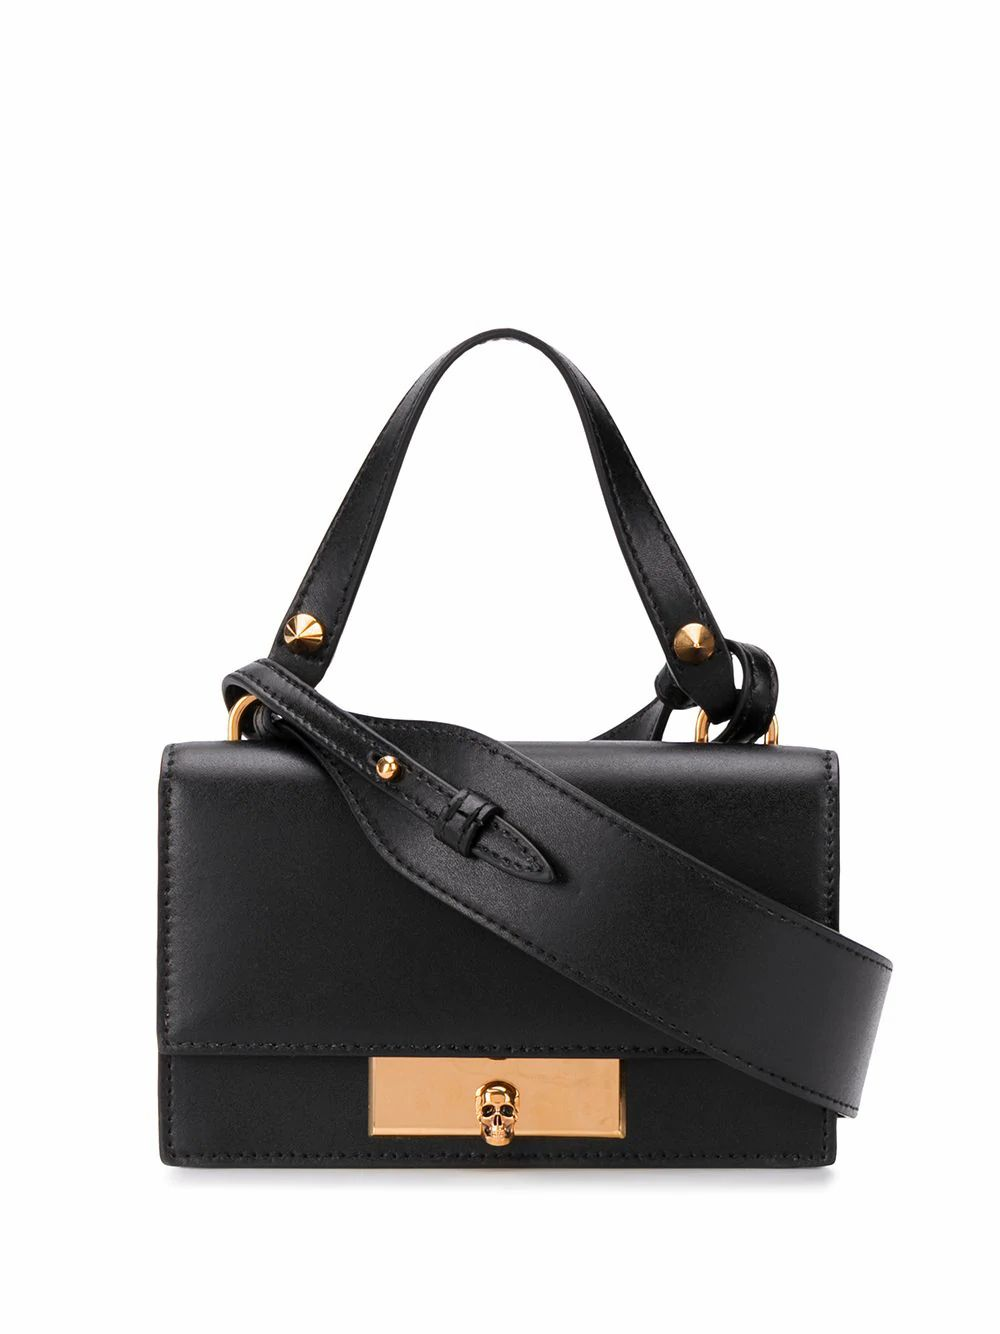 ALEXANDER MCQUEEN skull lock crossbody bag